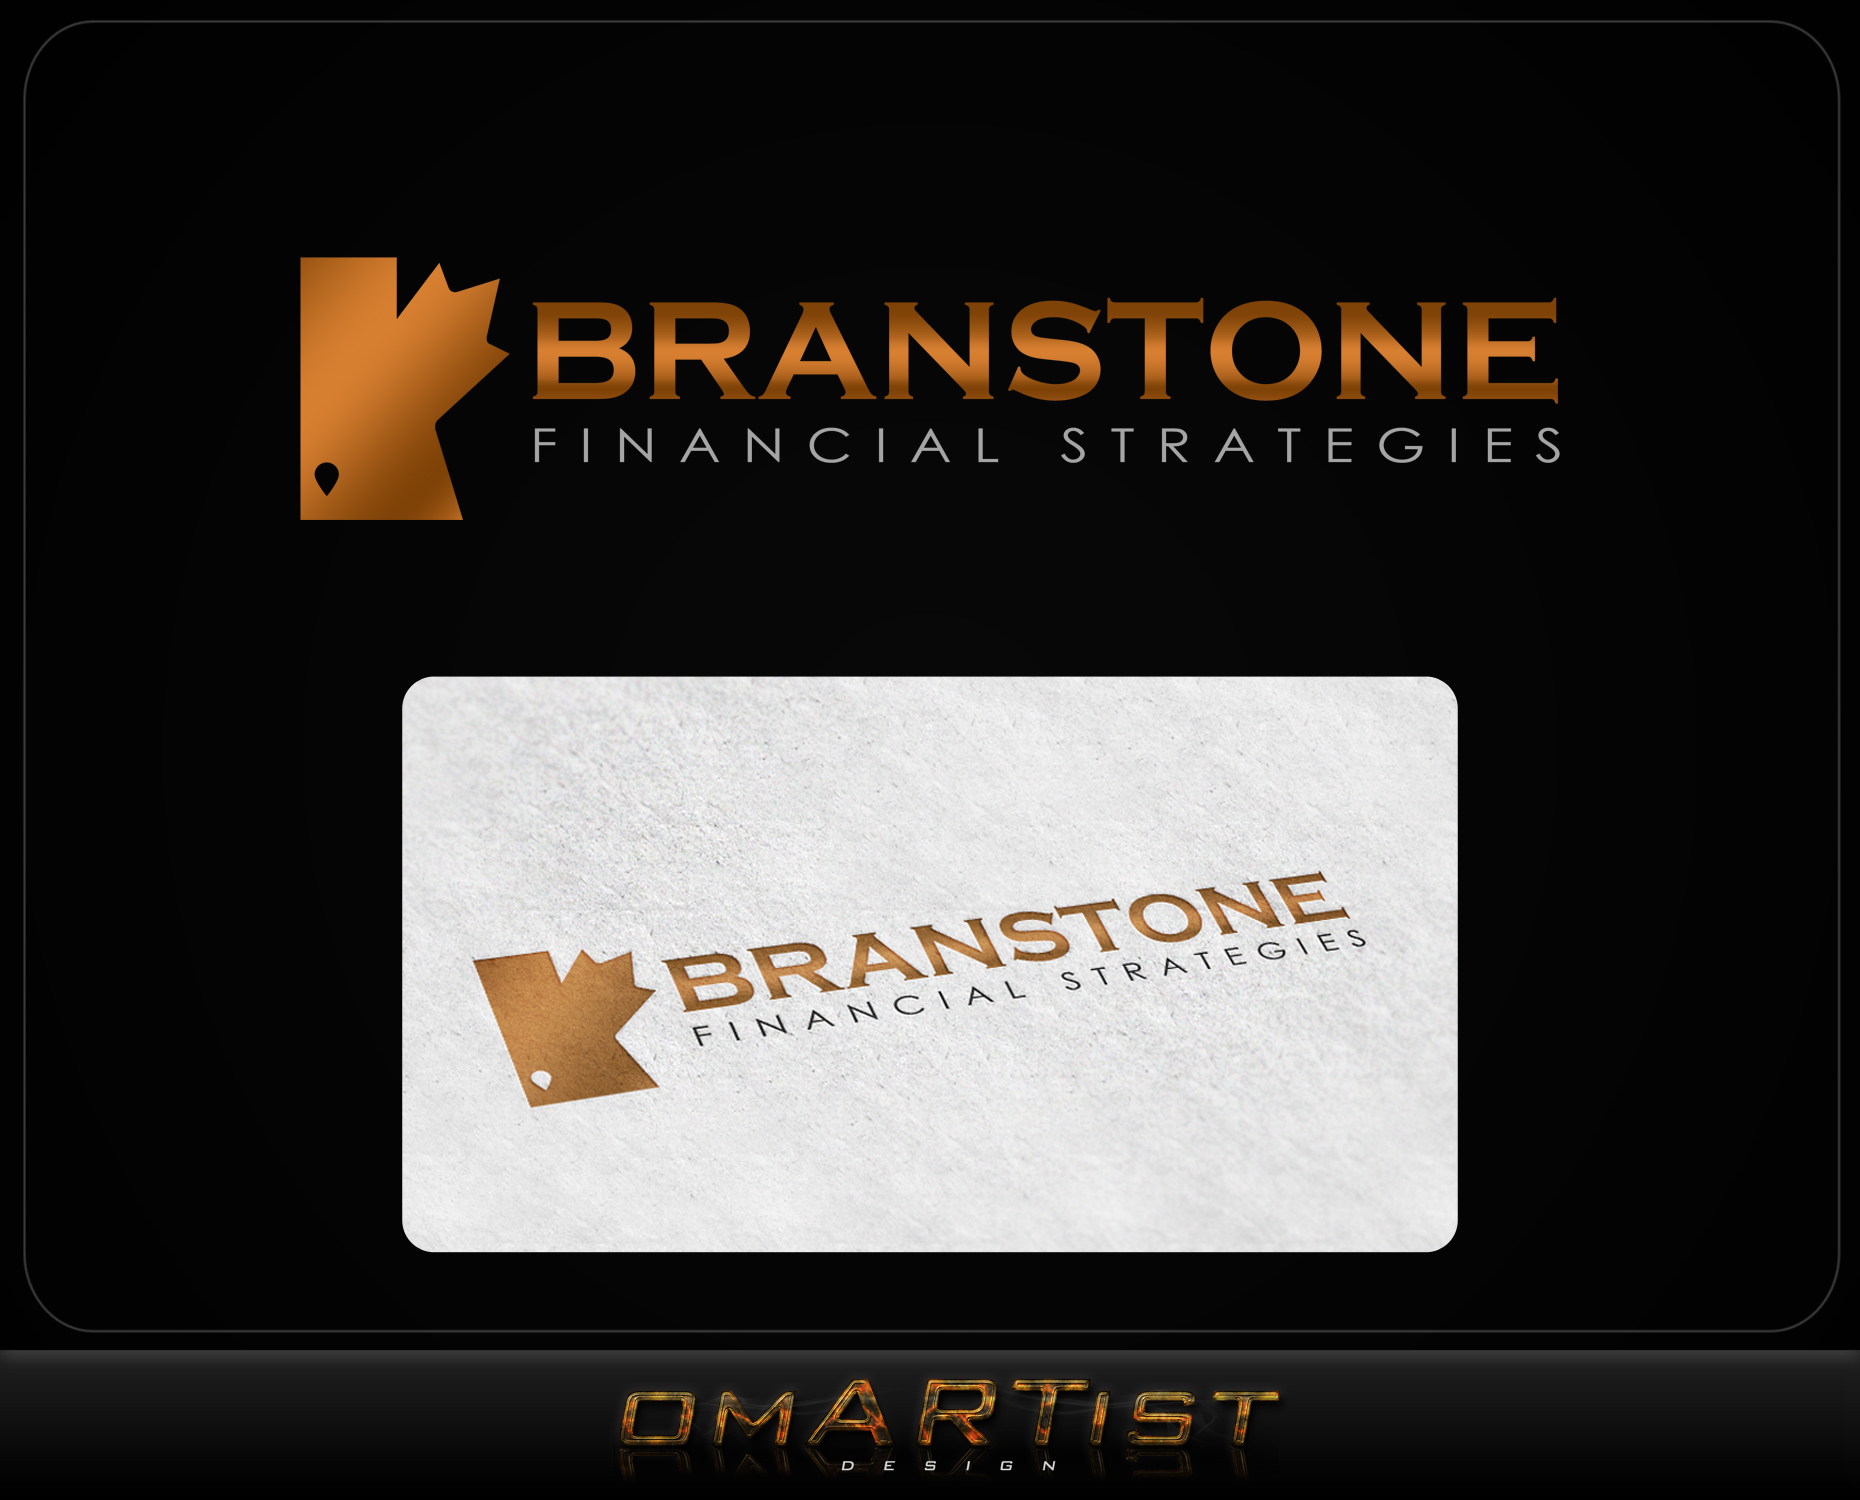 Logo Design by omARTist - Entry No. 198 in the Logo Design Contest Inspiring Logo Design for Branstone Financial Strategies.